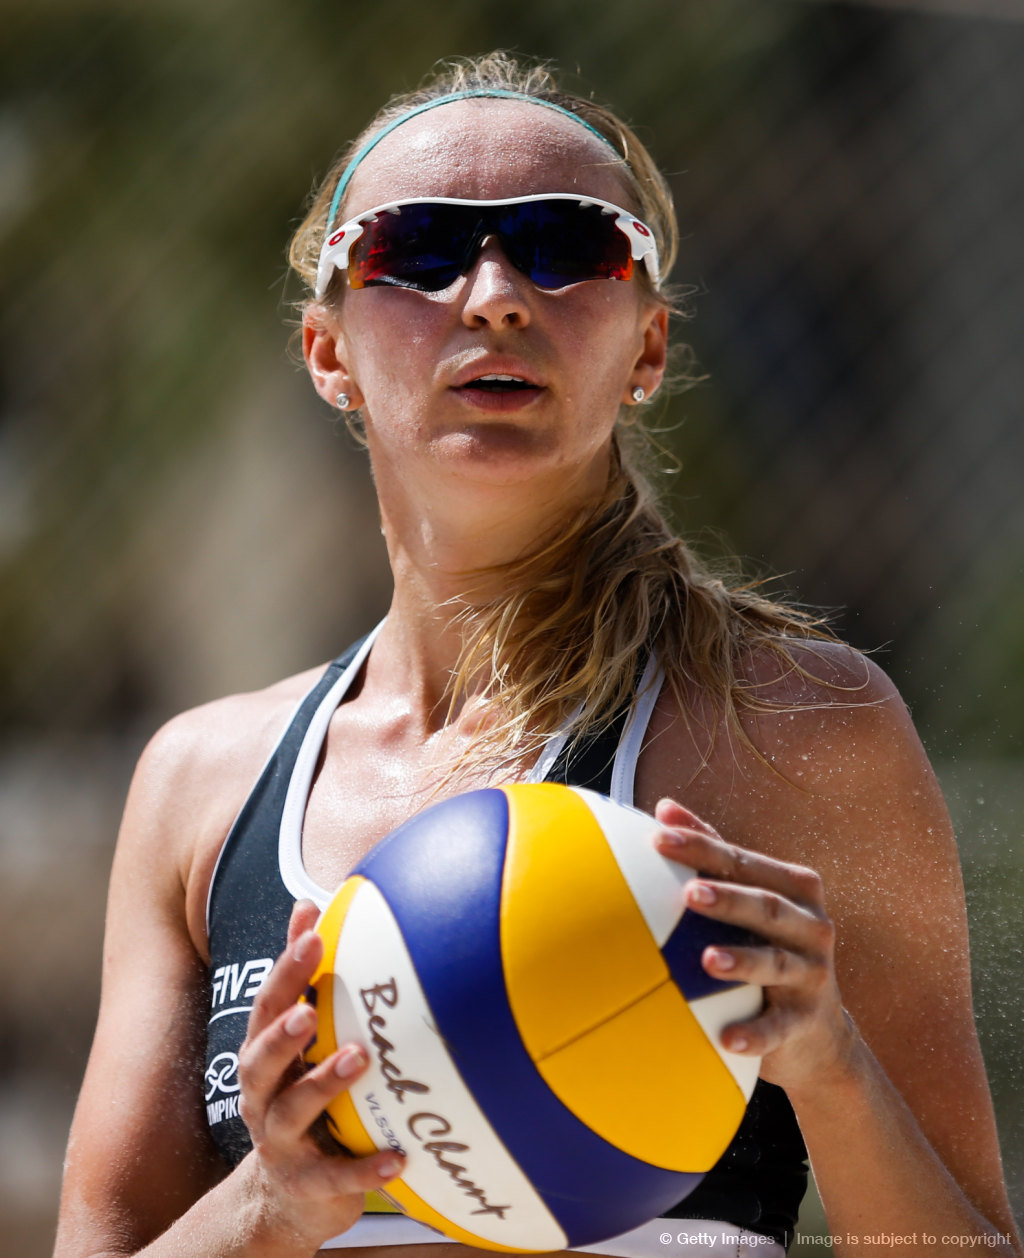 FIVB Beach Volleyball World Tour Maceio Open — Day 4